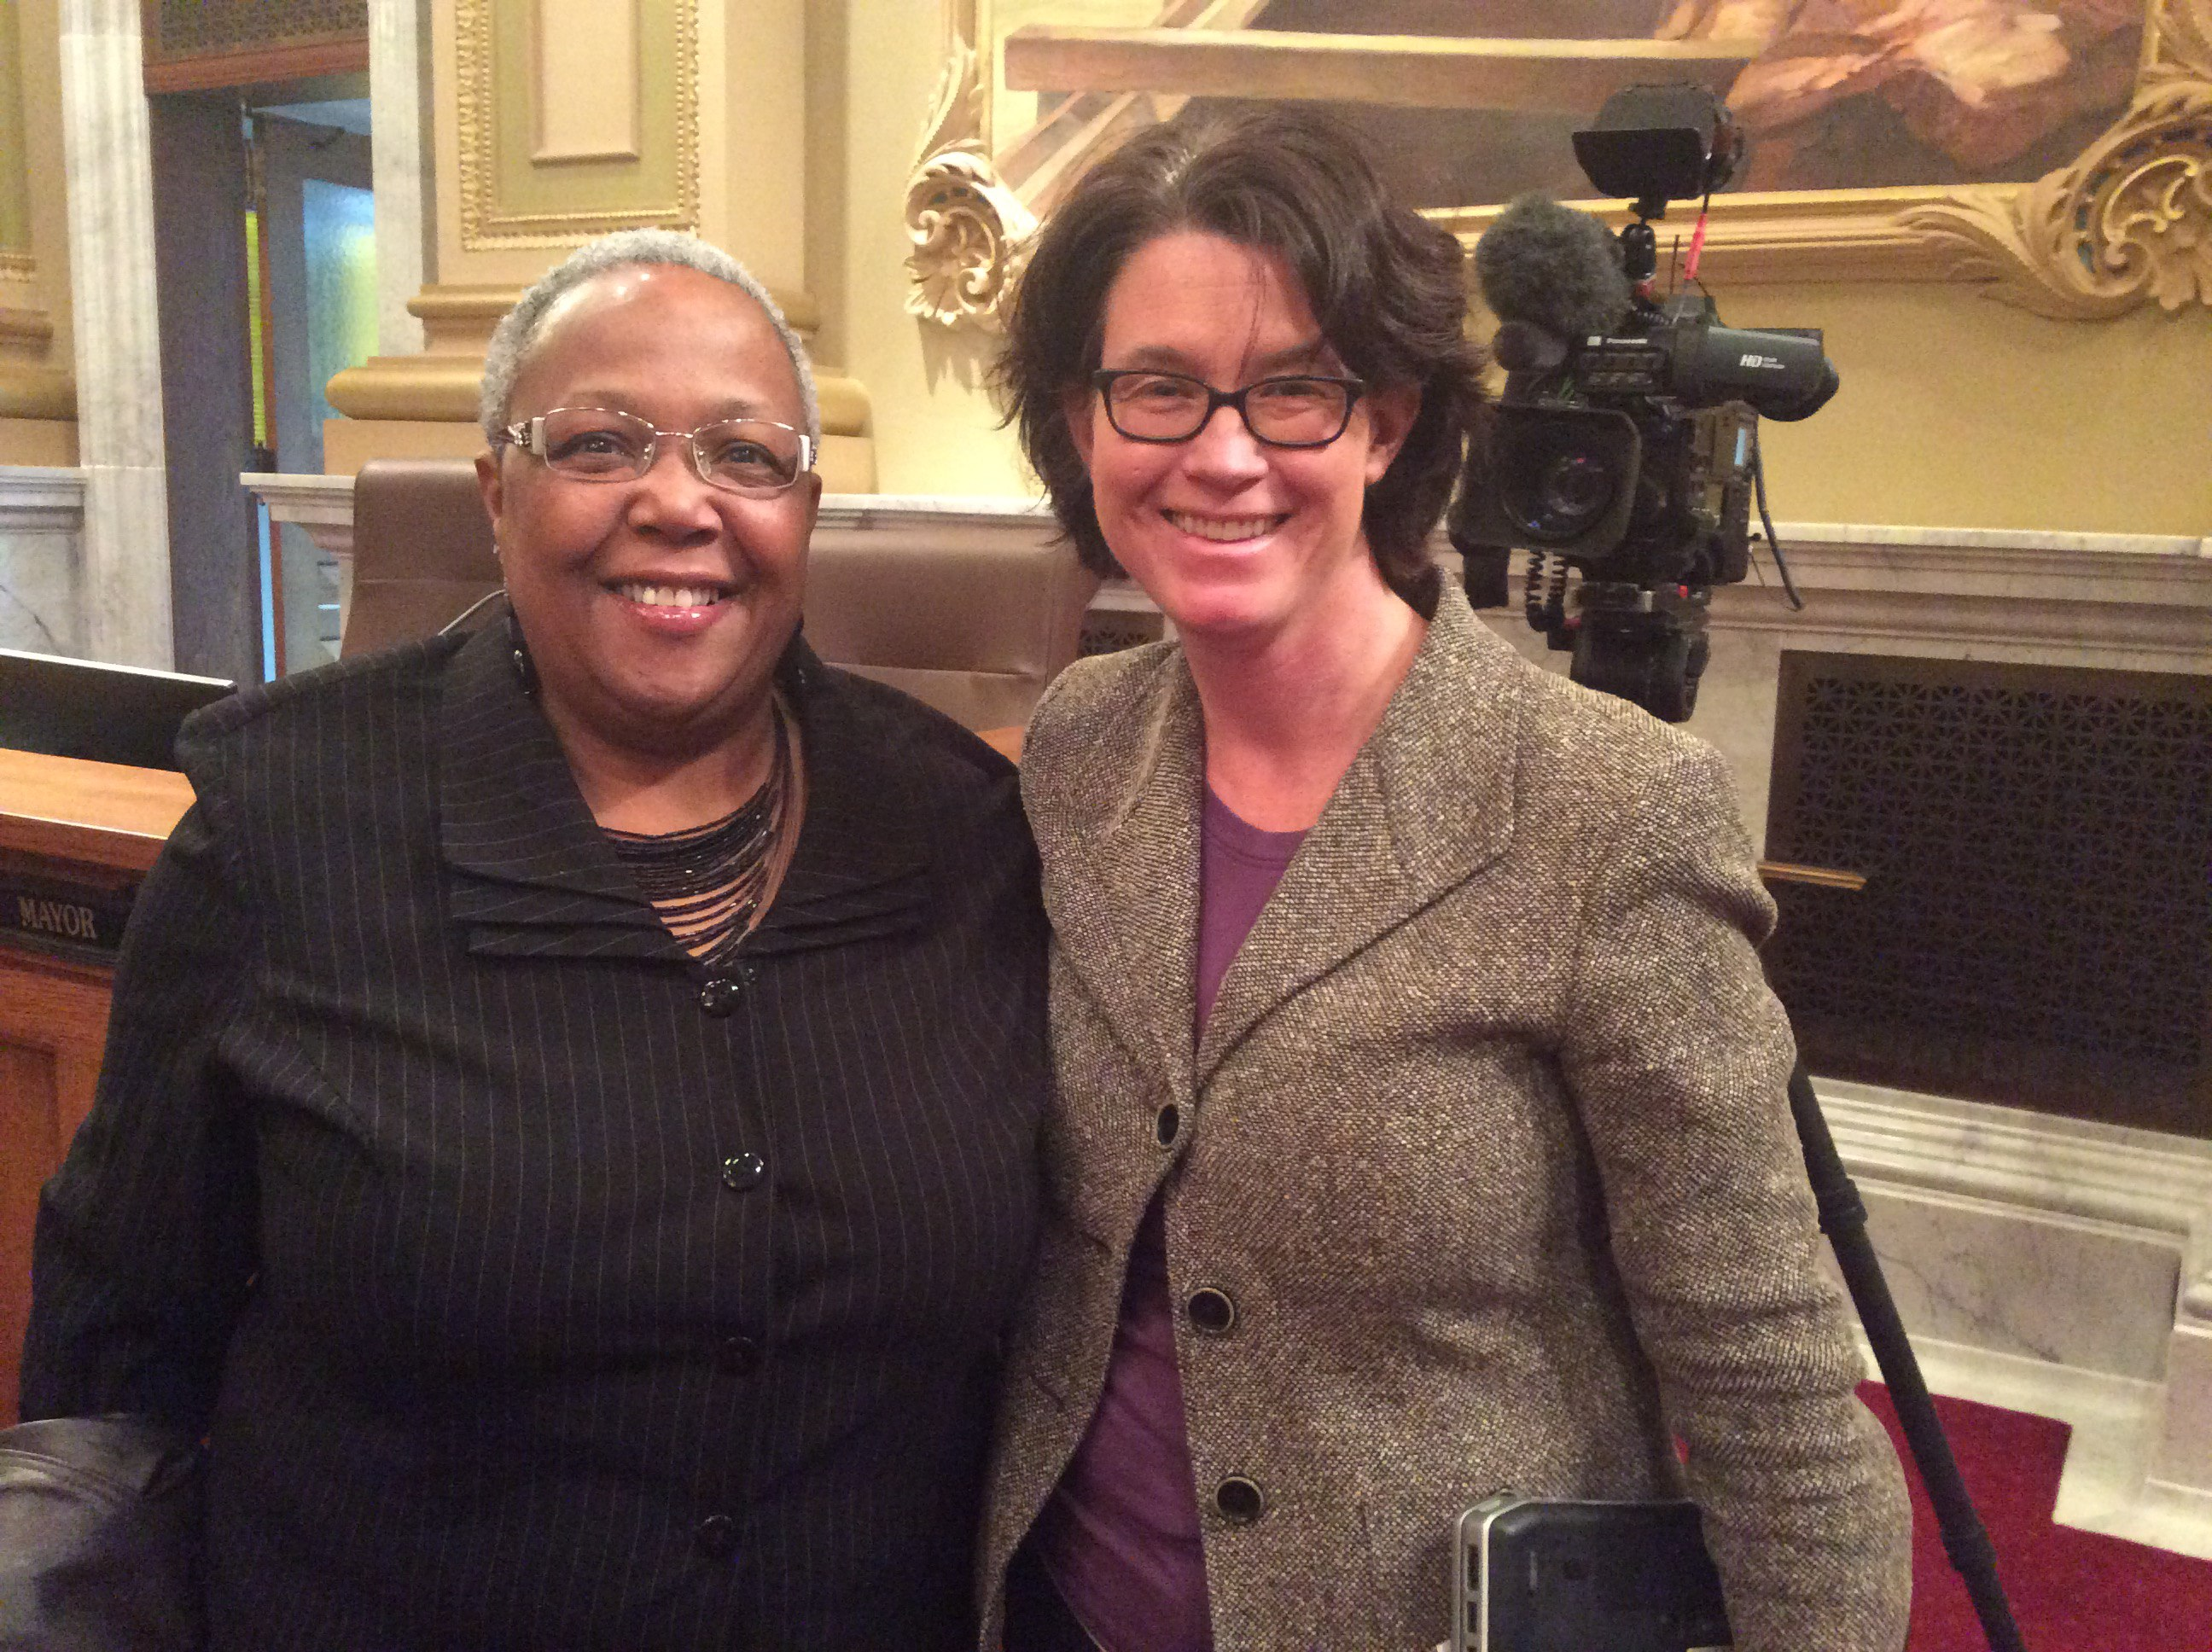 MSR Publisher and CEO Tracey Williams-Dillard (l) and Council Member Elizabeth Glidden